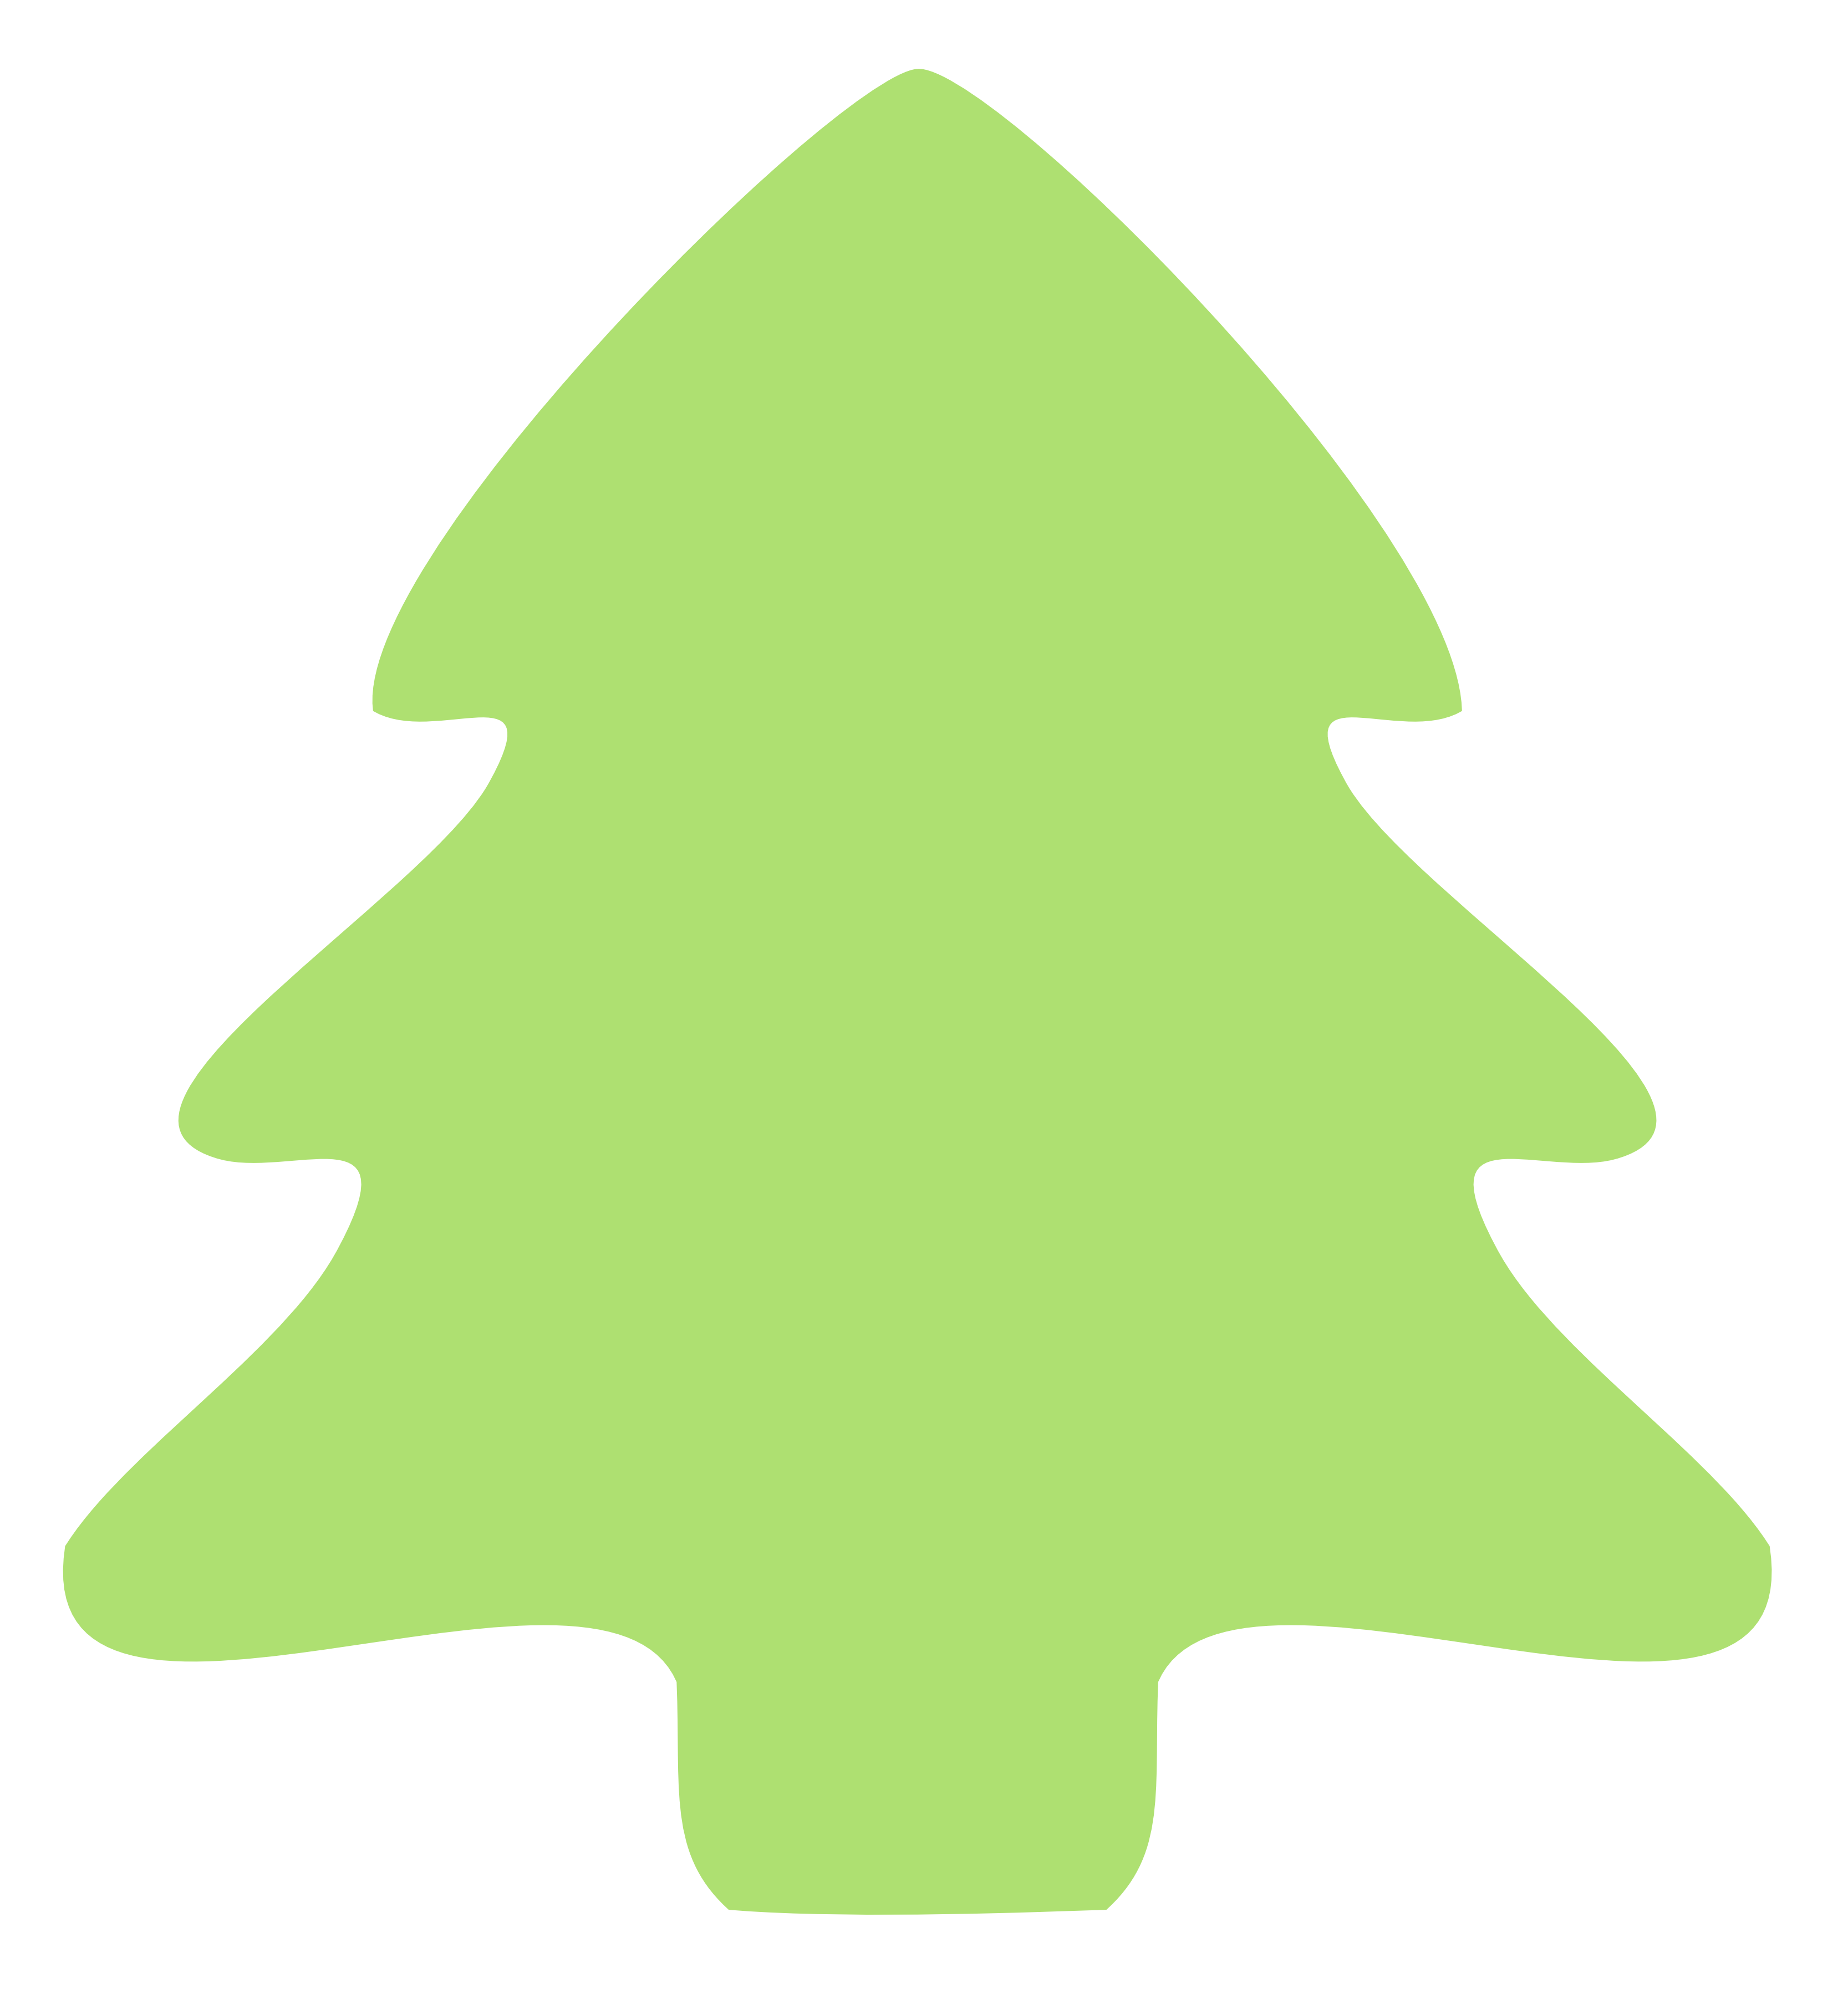 35 Xmas Tree Clipart Free Cliparts That You Can Download To You